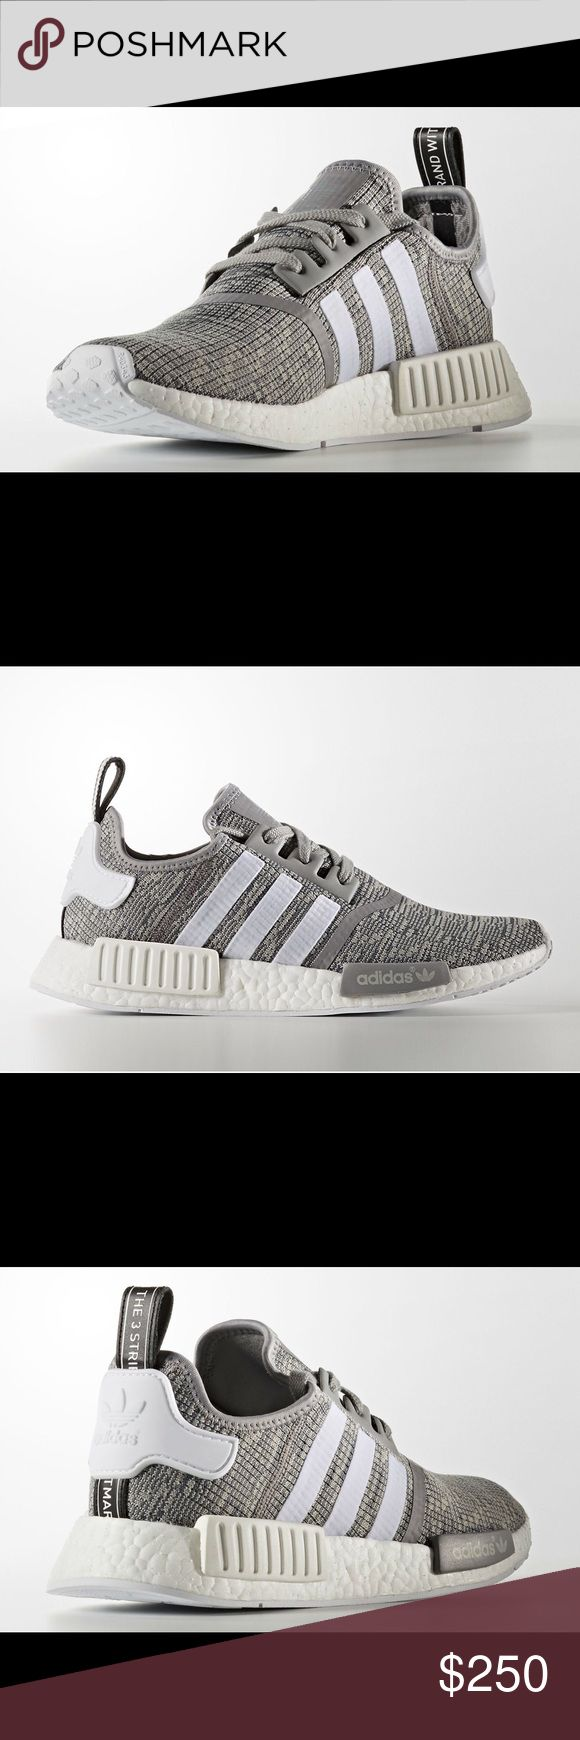 Adidas Originals NMD R1 Marled Grey Sz 9 BB2886 Up for sale is a brand new, never worn, new in box, pair of   Adidas Originals NMD_R1  Mens Sneakers  Color: Solid Grey / Running White (BB2886)   US Size 9   100% authentic, purchases directly from store   Will combine shipping on multiple items. Can ship from Canada or USA. Adidas Shoes Sneakers